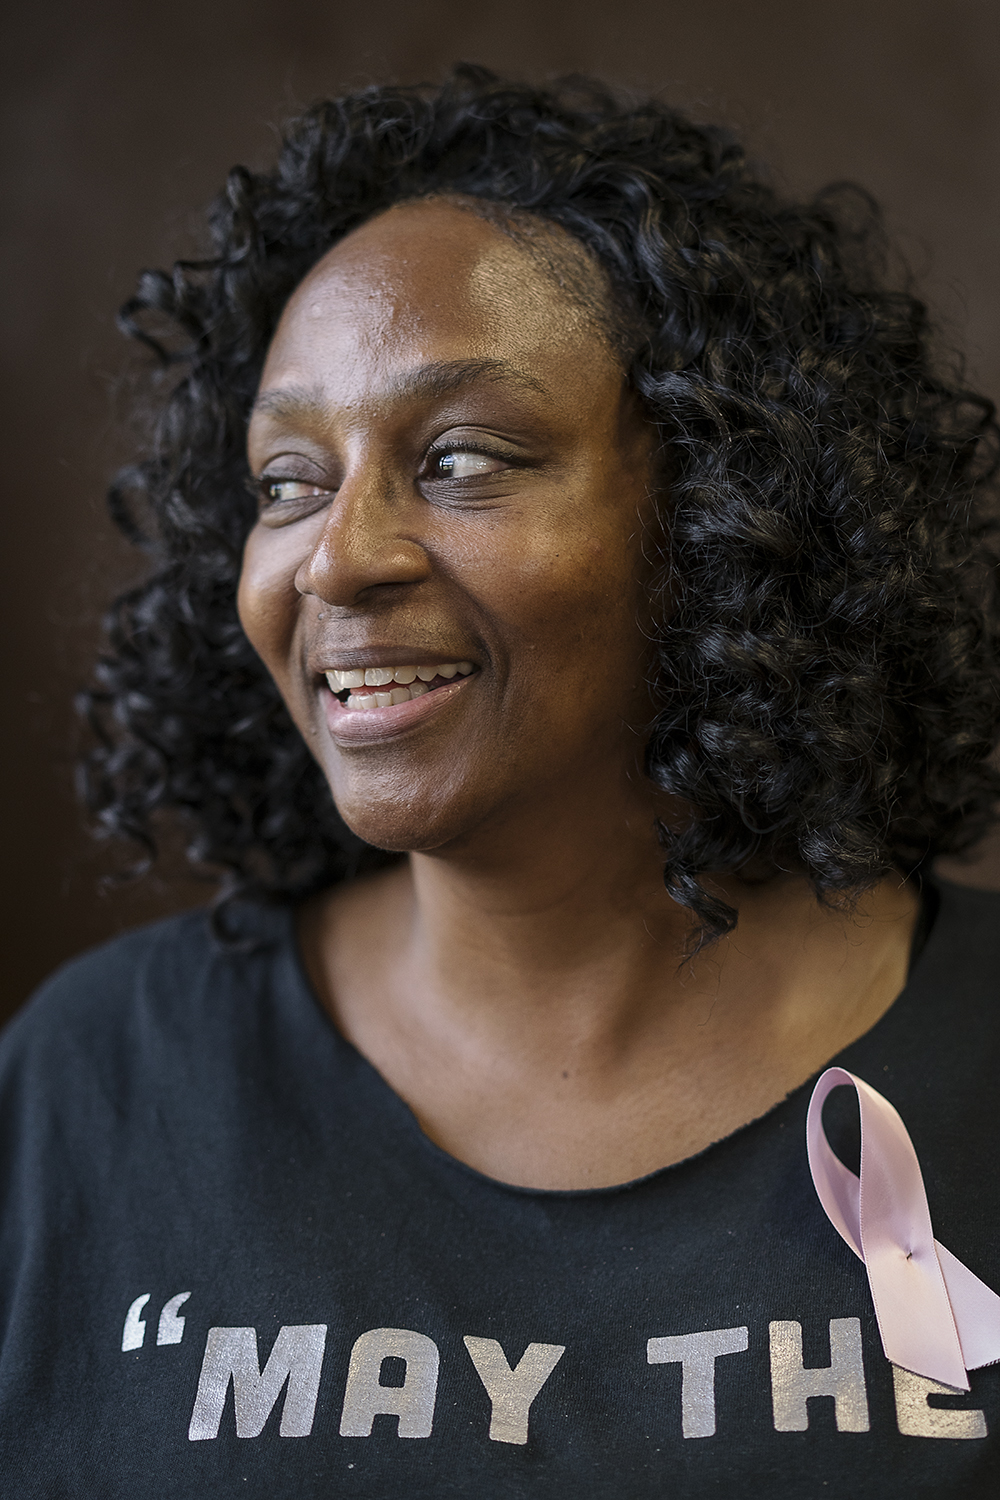 Flint, MI - Monday, October 16, 2017:  Wearing a pink ribbon to display support for National Breast Cancer Awareness Month, Sheila Miller-Graham from Flint, has her portrait taken on the dance floor in the Berston Field House. In September, 1982 Miller-Graham established the Creative Expressions Dance Studio, based in Berston, providing the local youth a place to learn the discipline of dance.